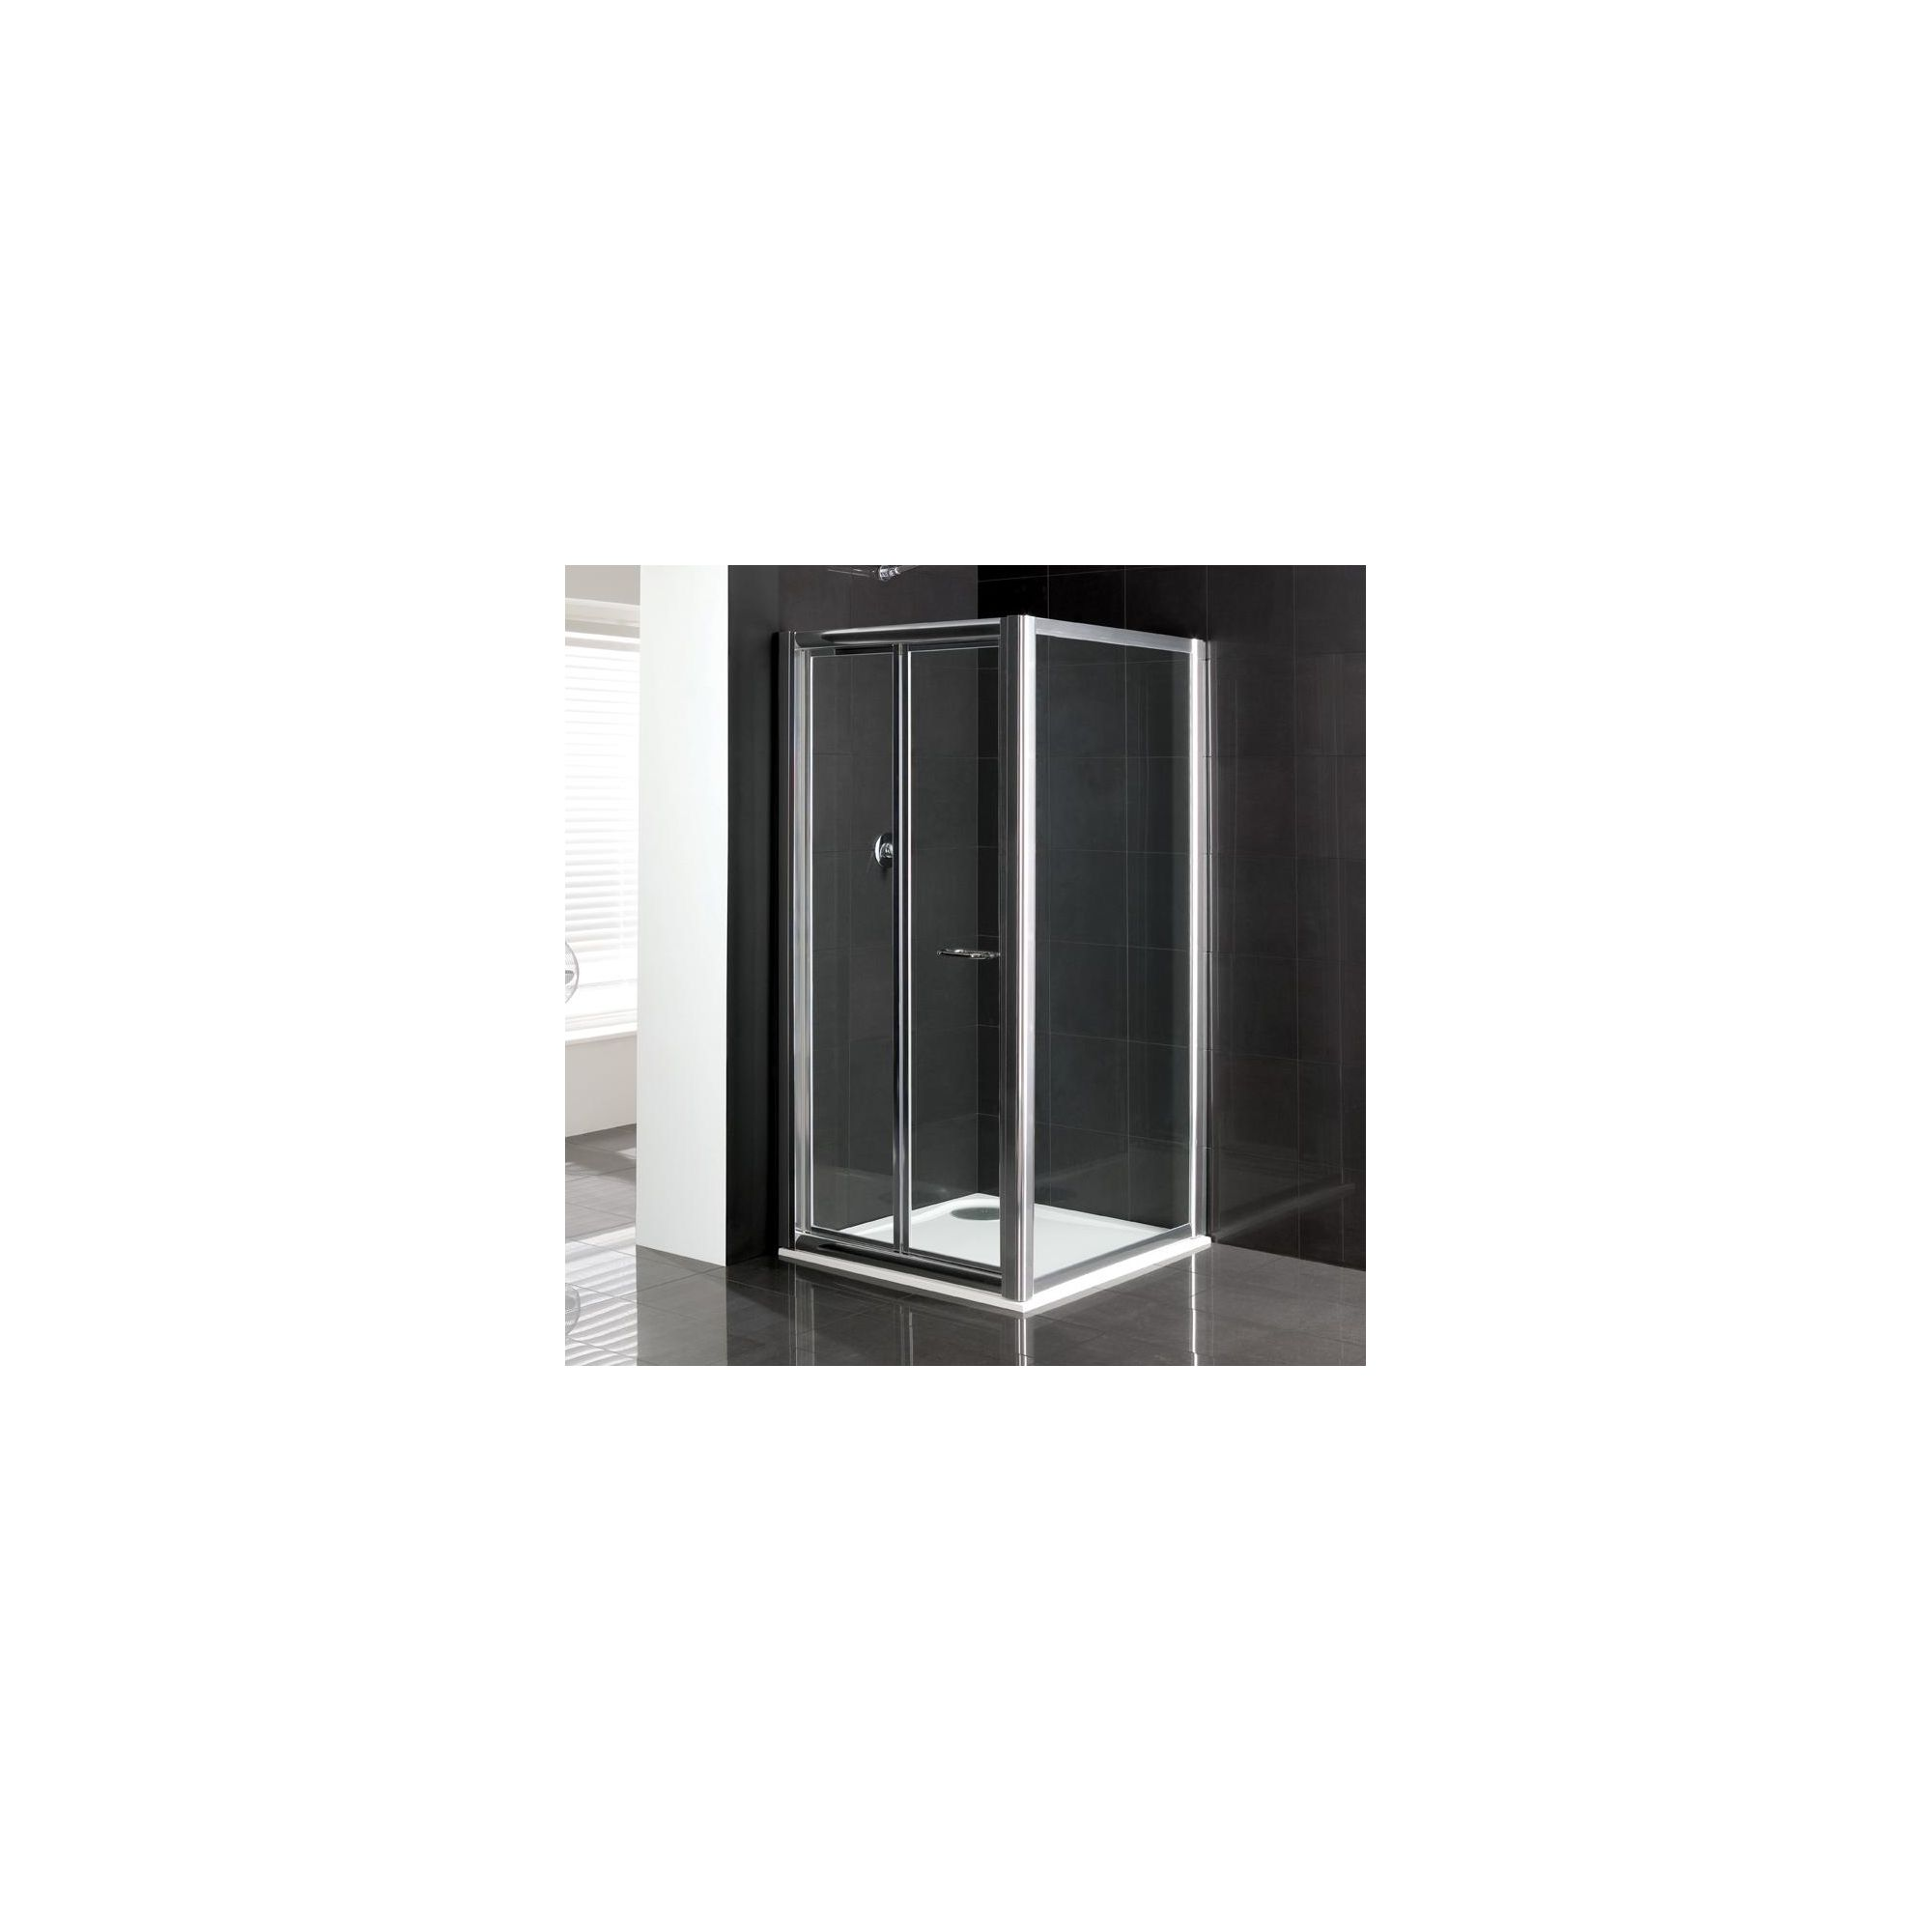 Duchy Elite Silver Bi-Fold Door Shower Enclosure, 800mm x 800mm, Standard Tray, 6mm Glass at Tesco Direct